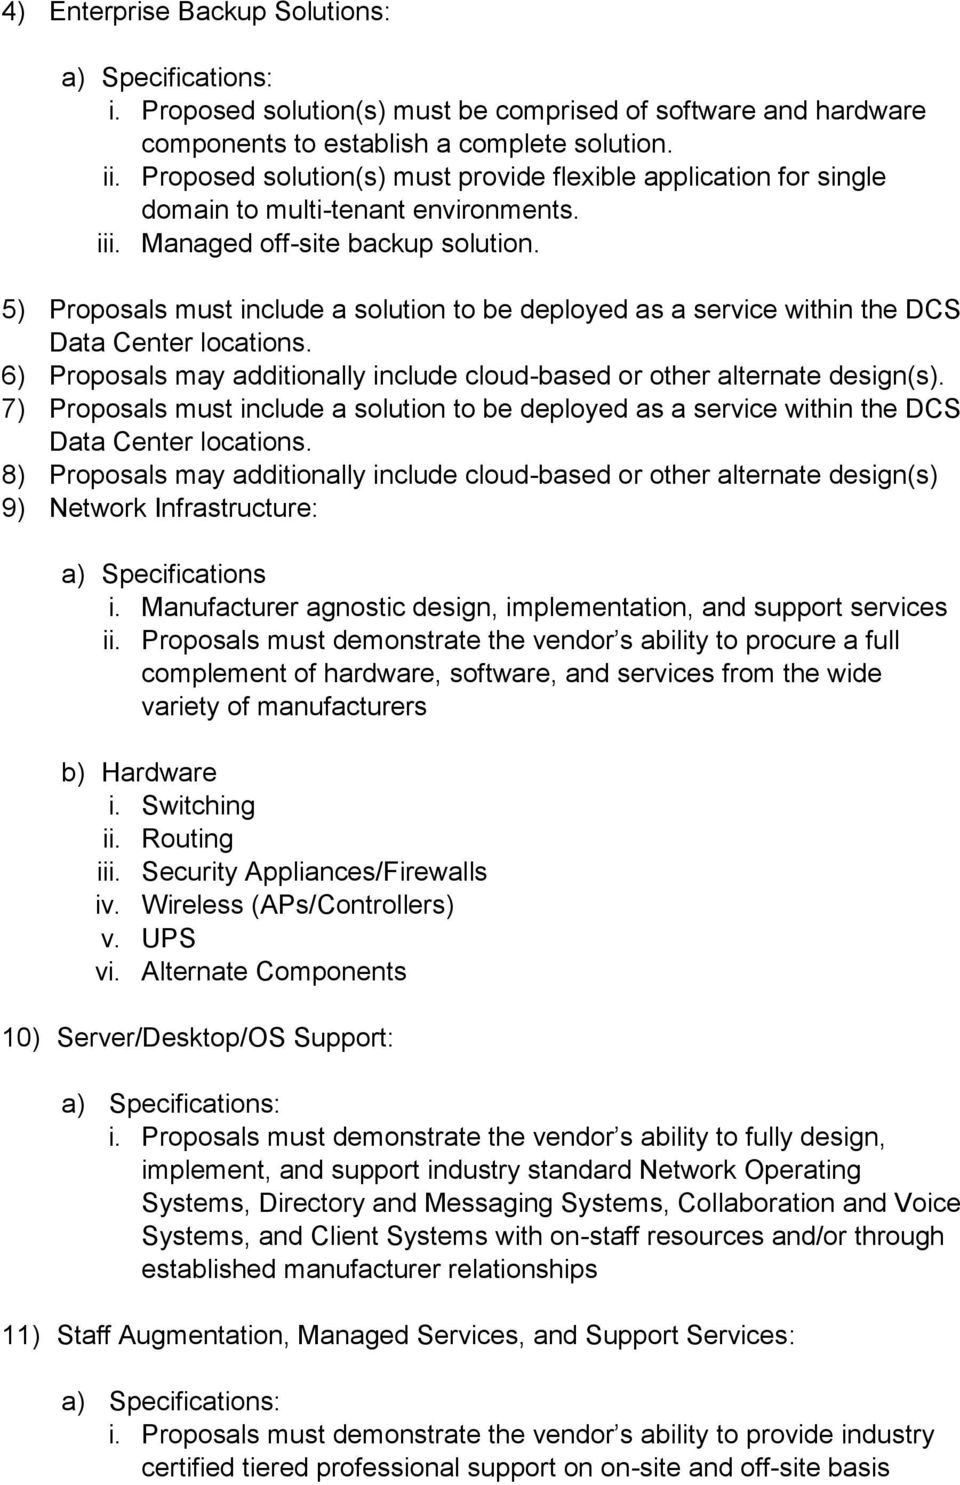 5) Proposals must include a solution to be deployed as a service within the DCS Data Center locations. 6) Proposals may additionally include cloud-based or other alternate design(s).